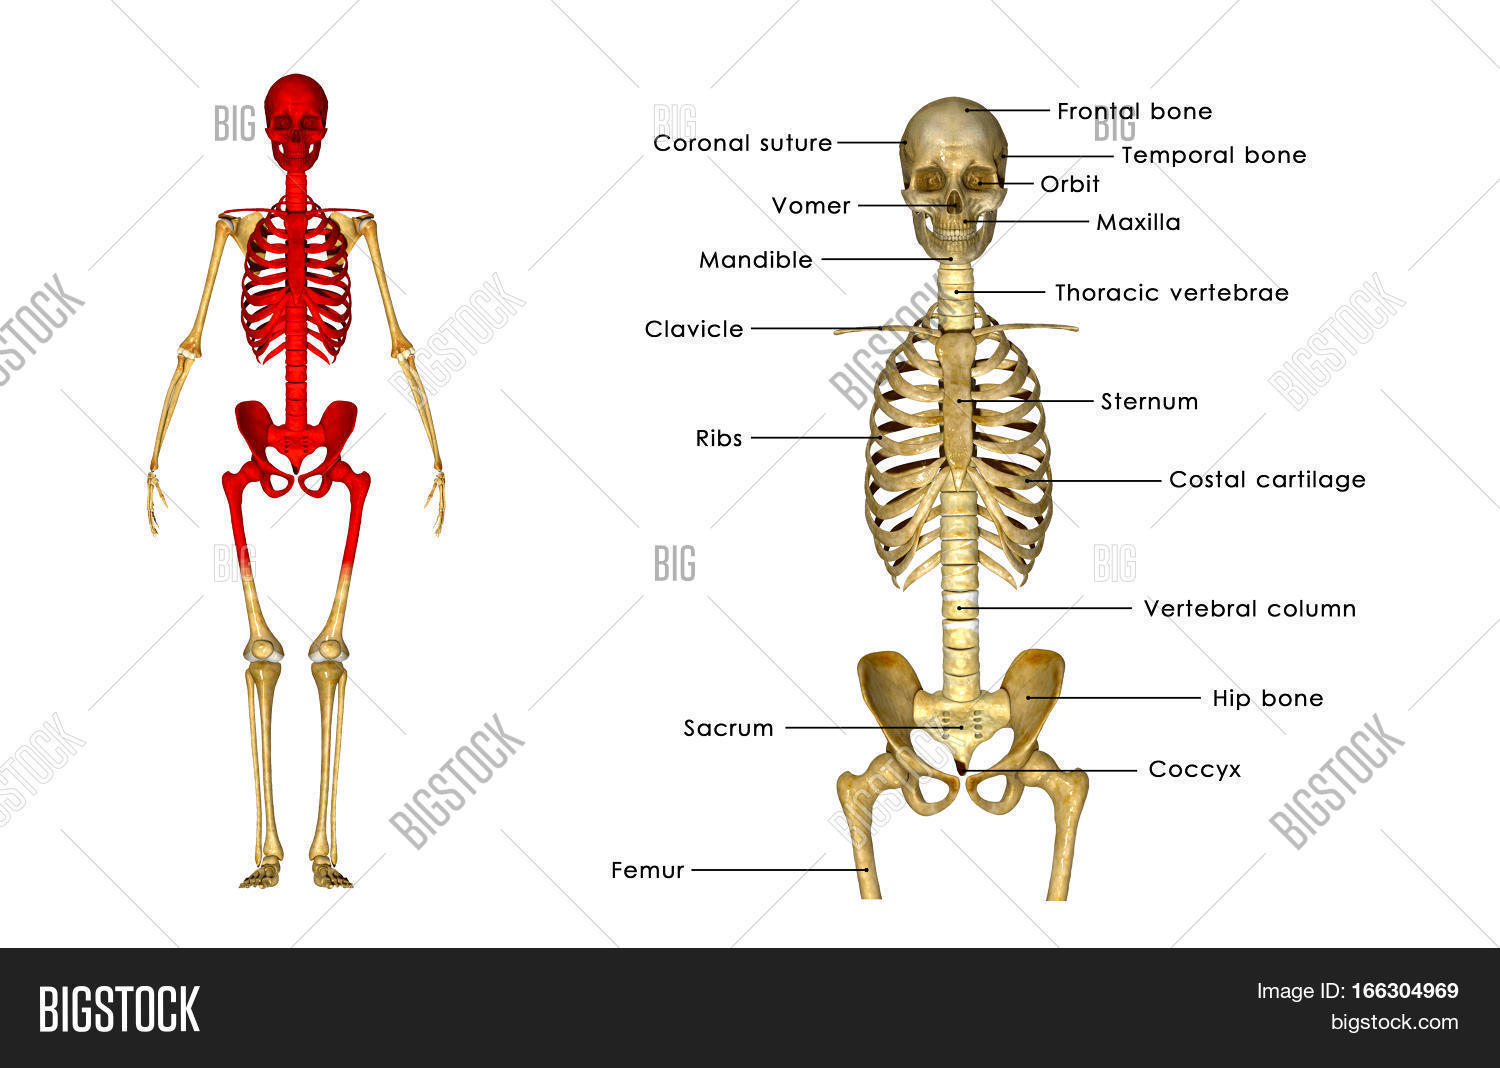 Spinal Cord, Extension Image & Photo (Free Trial) | Bigstock